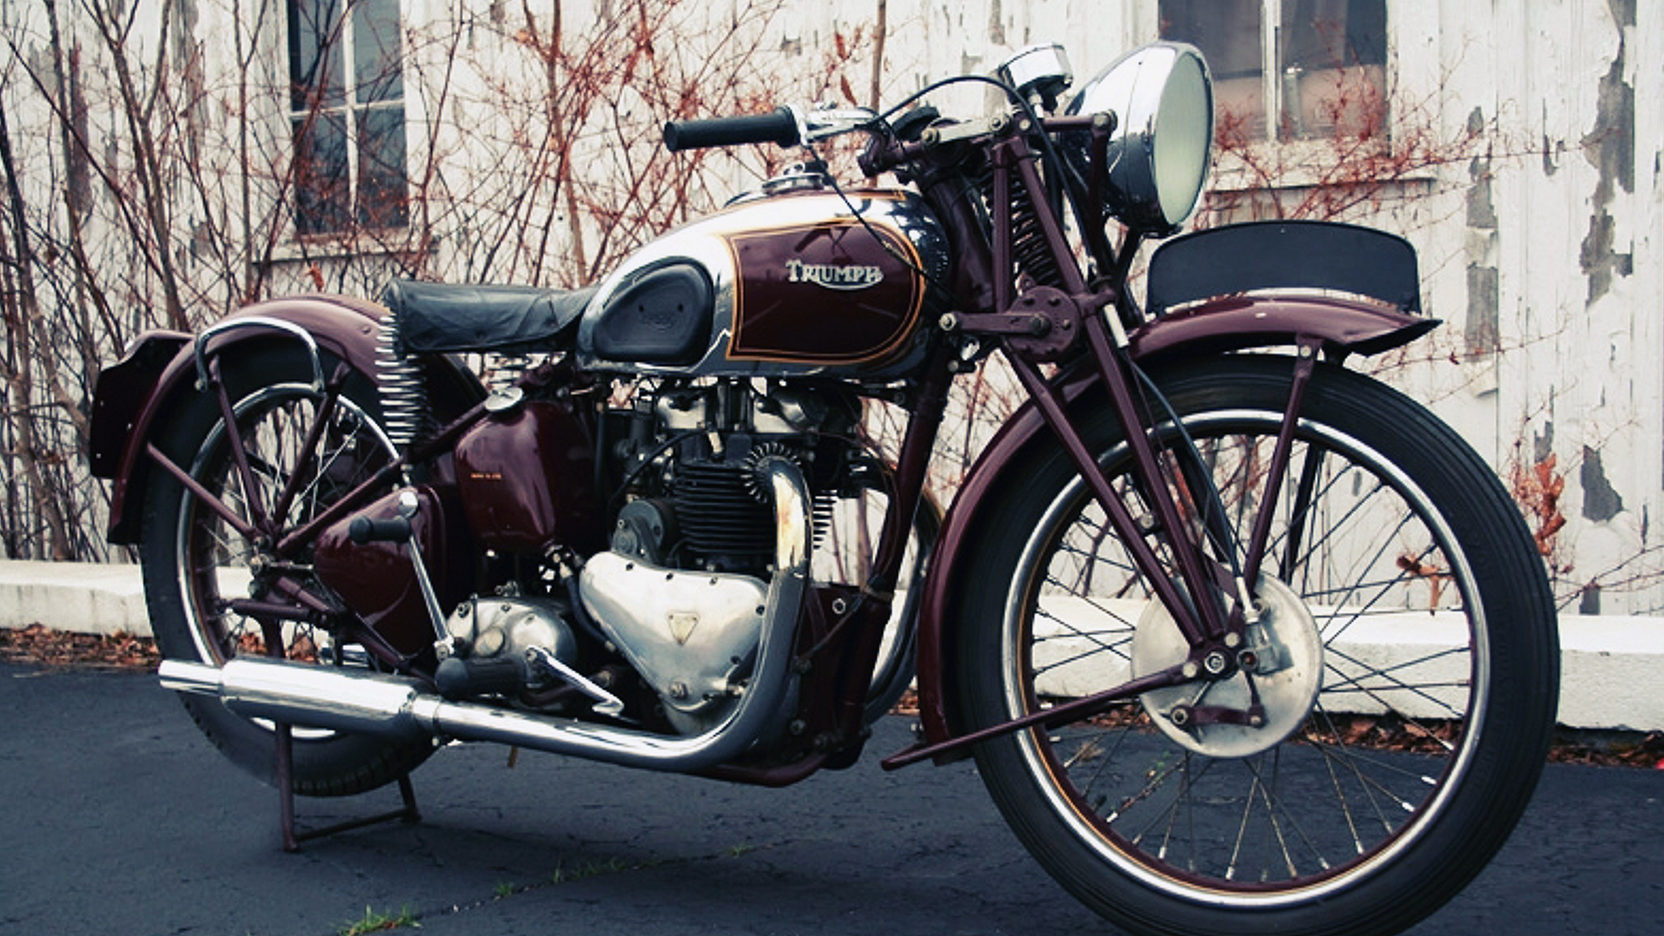 The 1938 Ex Steve McQueen Triumph Speed Twin coming up for sale by Mecum Auctions in January 2017. (Picture courtesy Mecum Auctions).